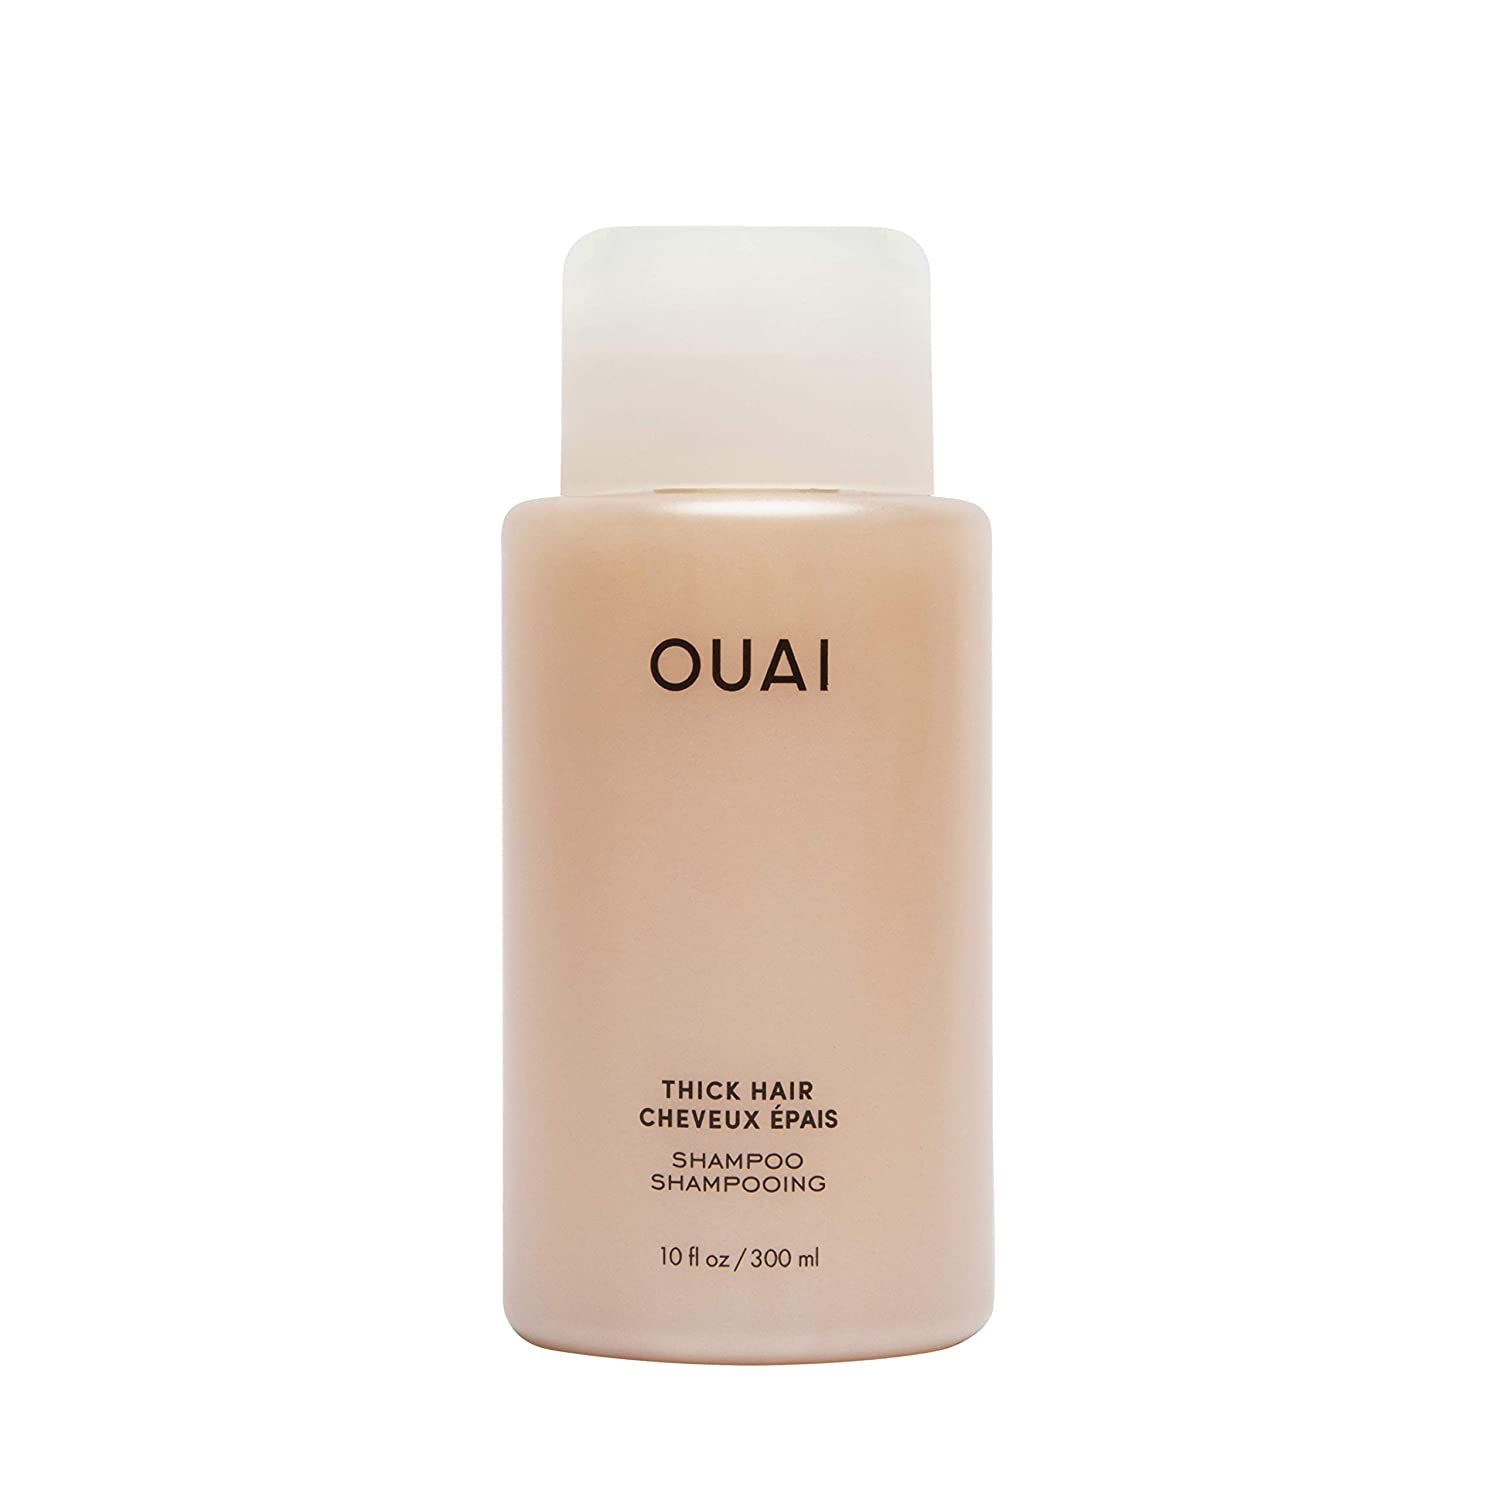 OUAI Thick Shampoo. Fight Frizz and Nourish Dry, Thick Hair with Strengthening Keratin, Marshmallow Root, Shea Butter and Avocado Oil. Free from Parabens, Sulfates and Phthalates. 10 oz